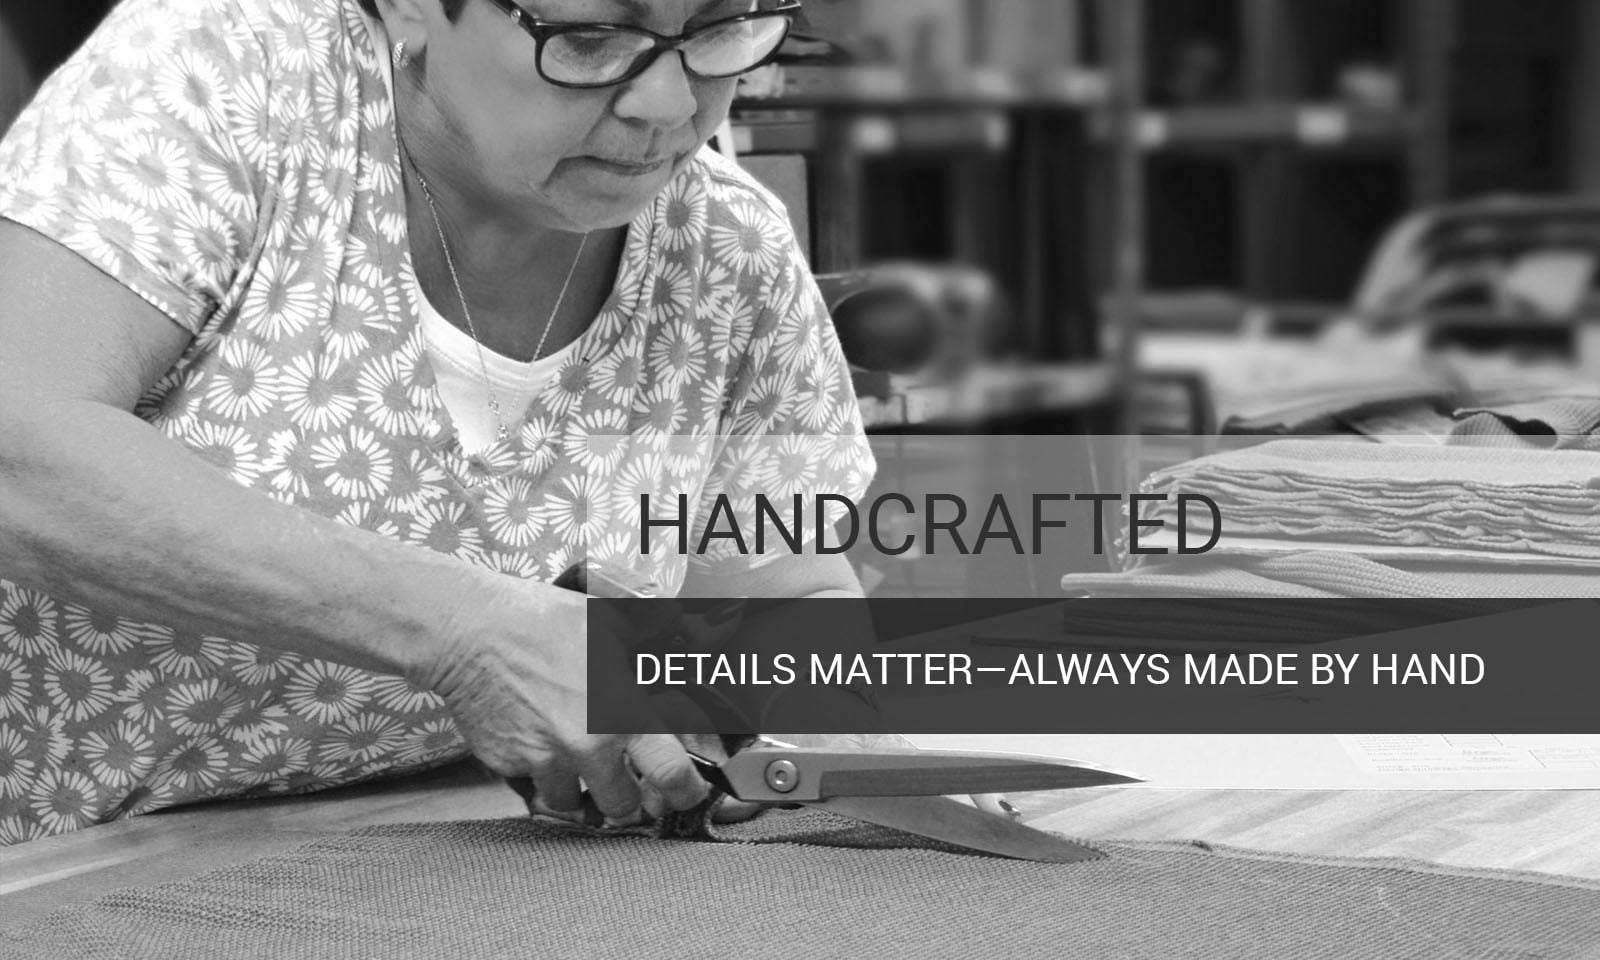 Hand Crafted - Details Matter—Made by Hand